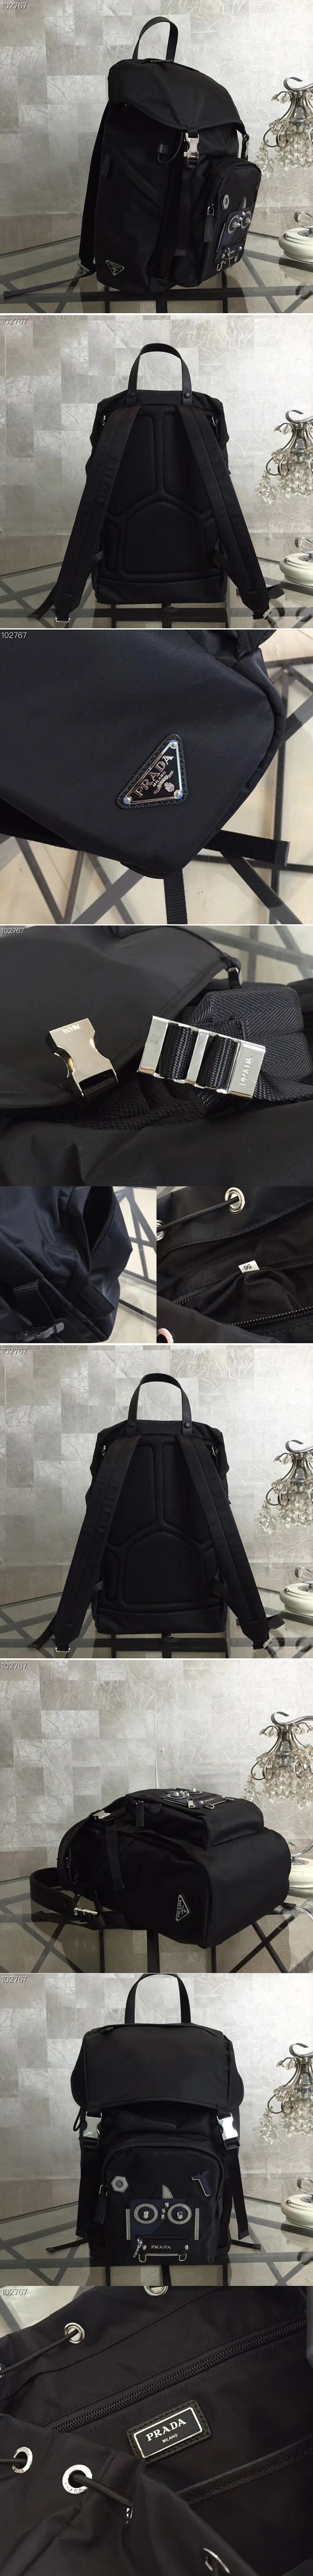 Replica Prada 2VZ135 Technical fabric backpack With Black Robat